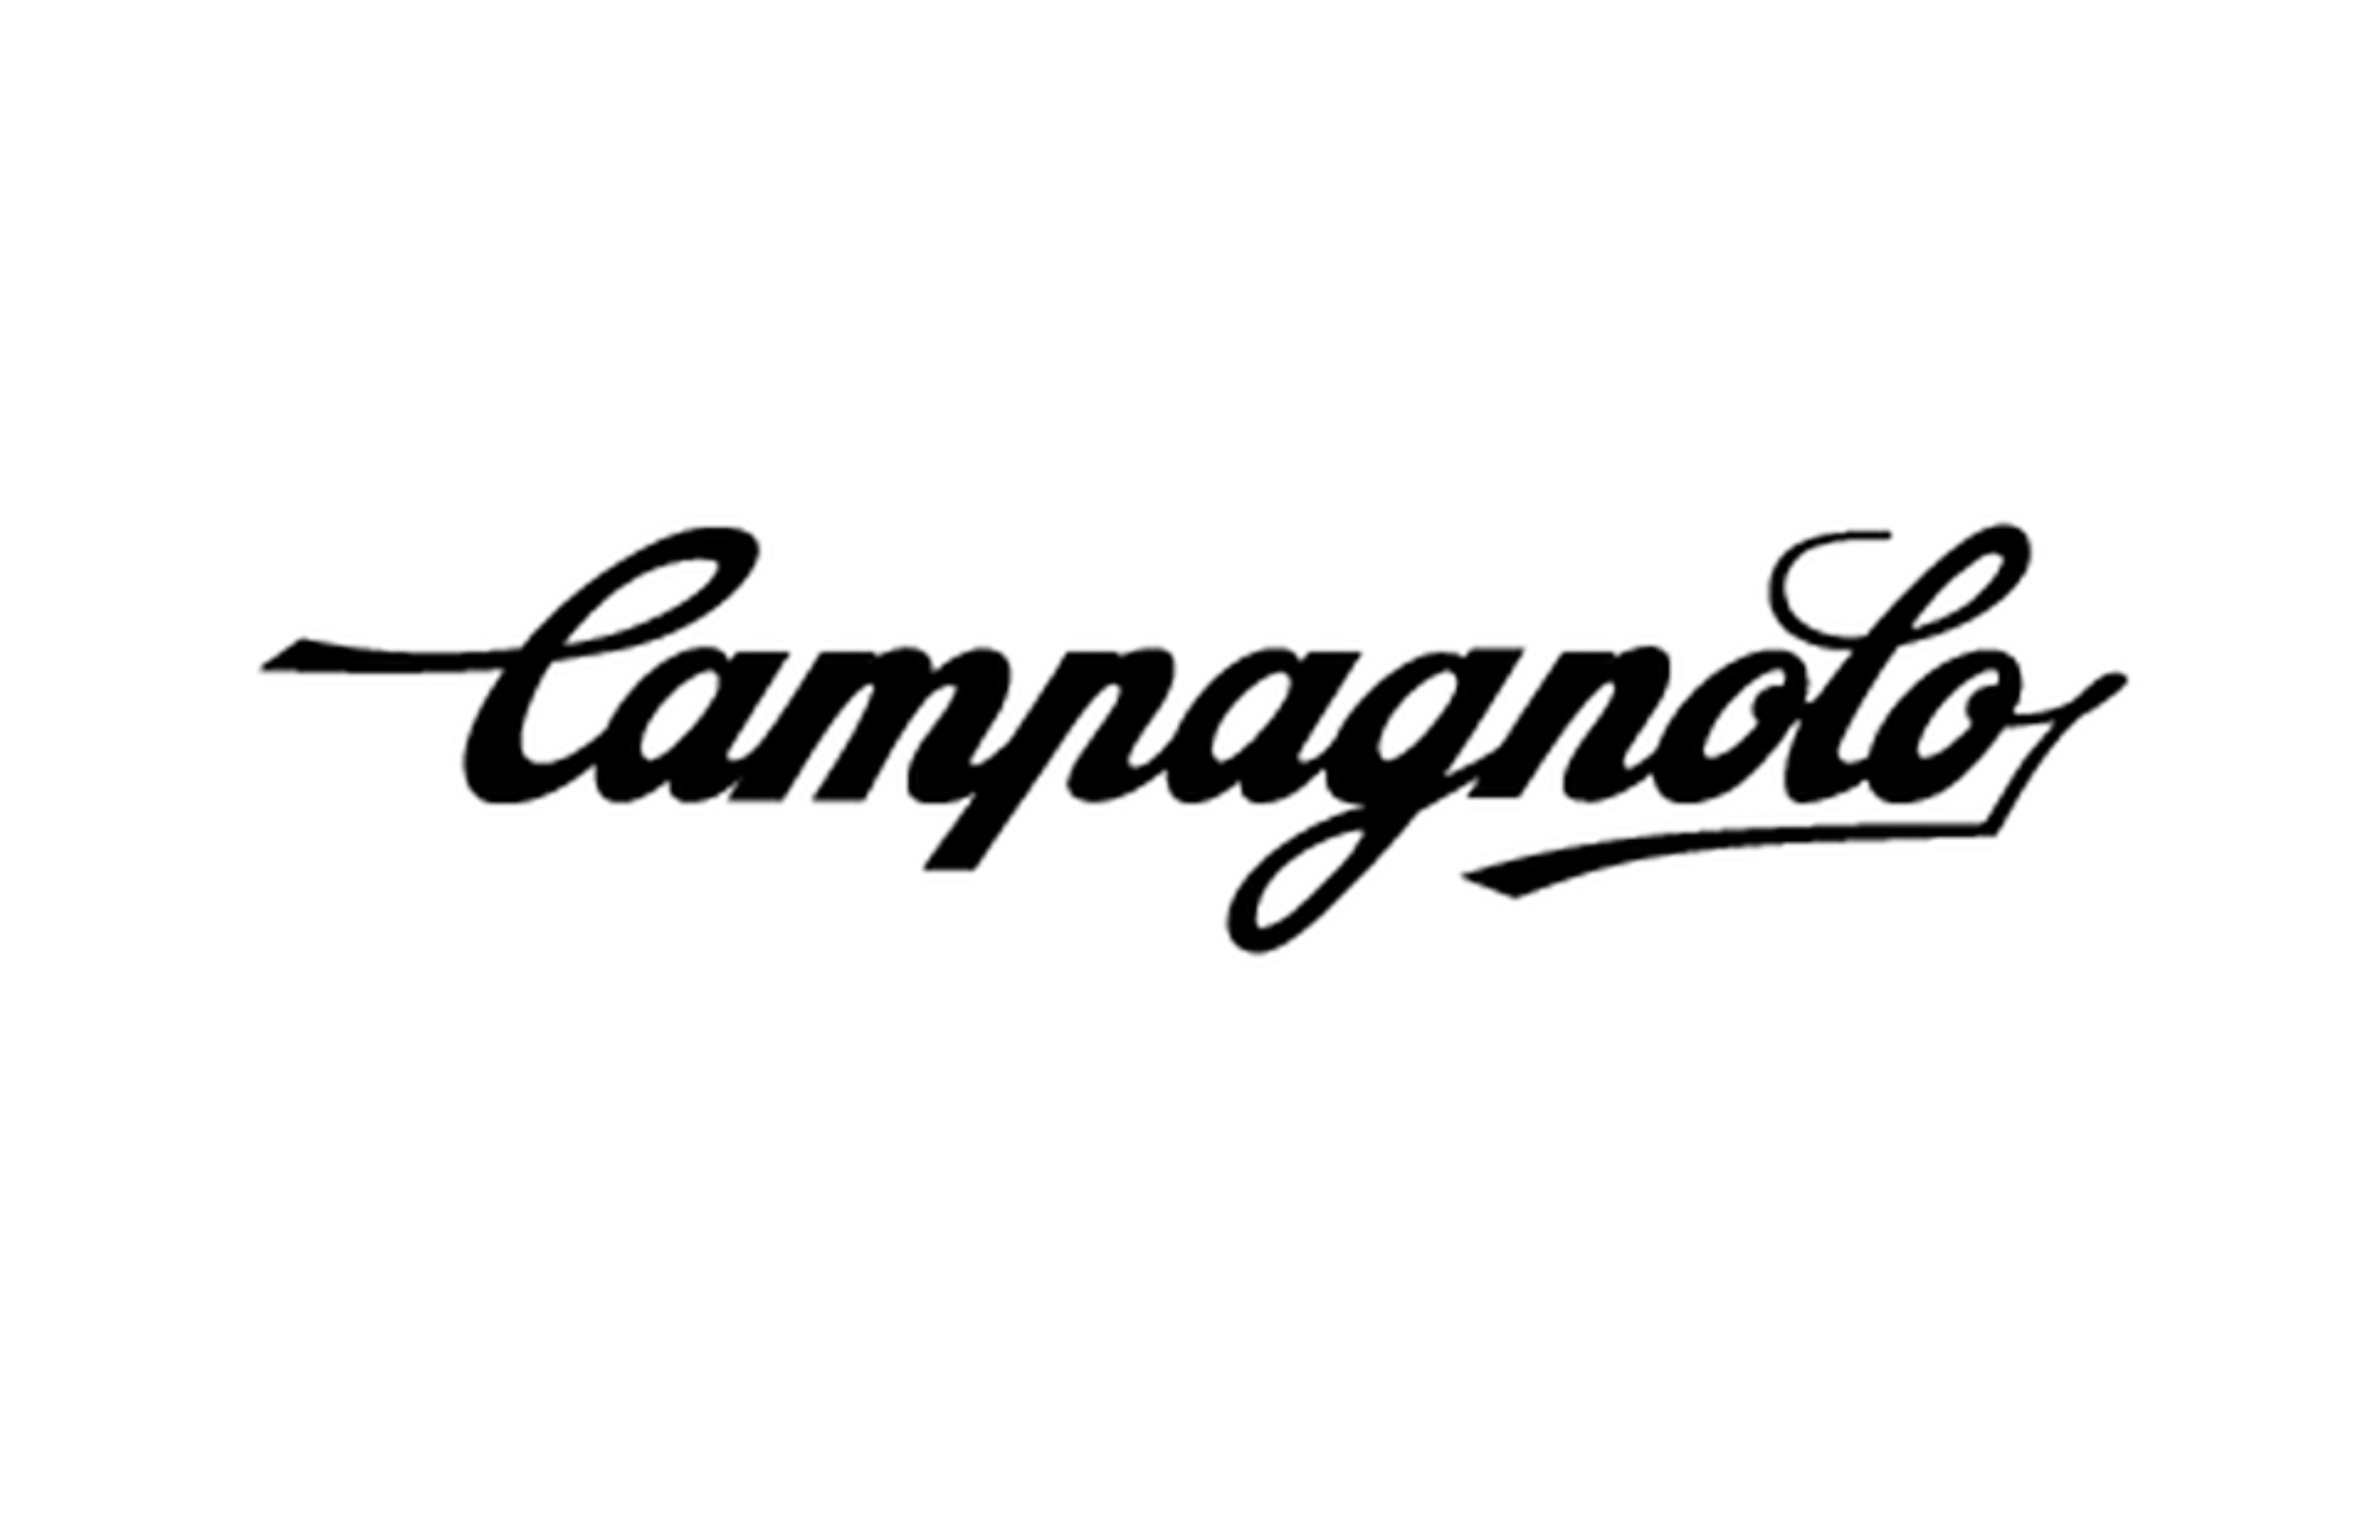 Campagnolo - Offizielle Webseite